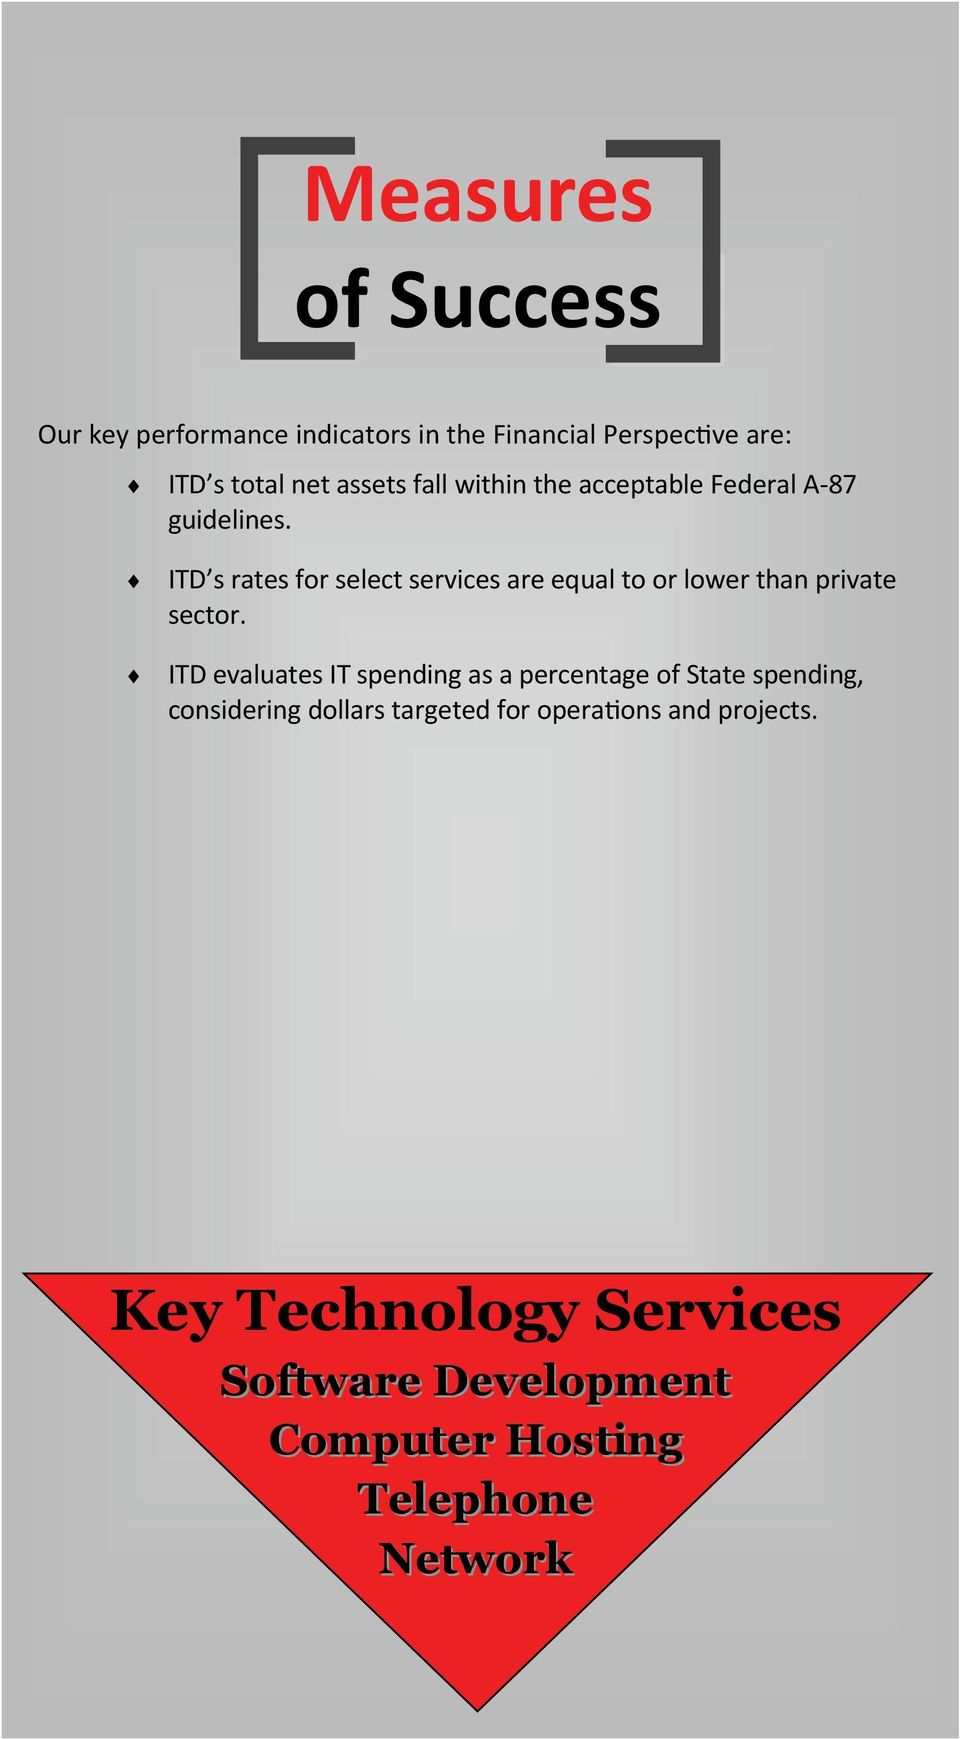 ITD s rates for select services are equal to or lower than private sector.